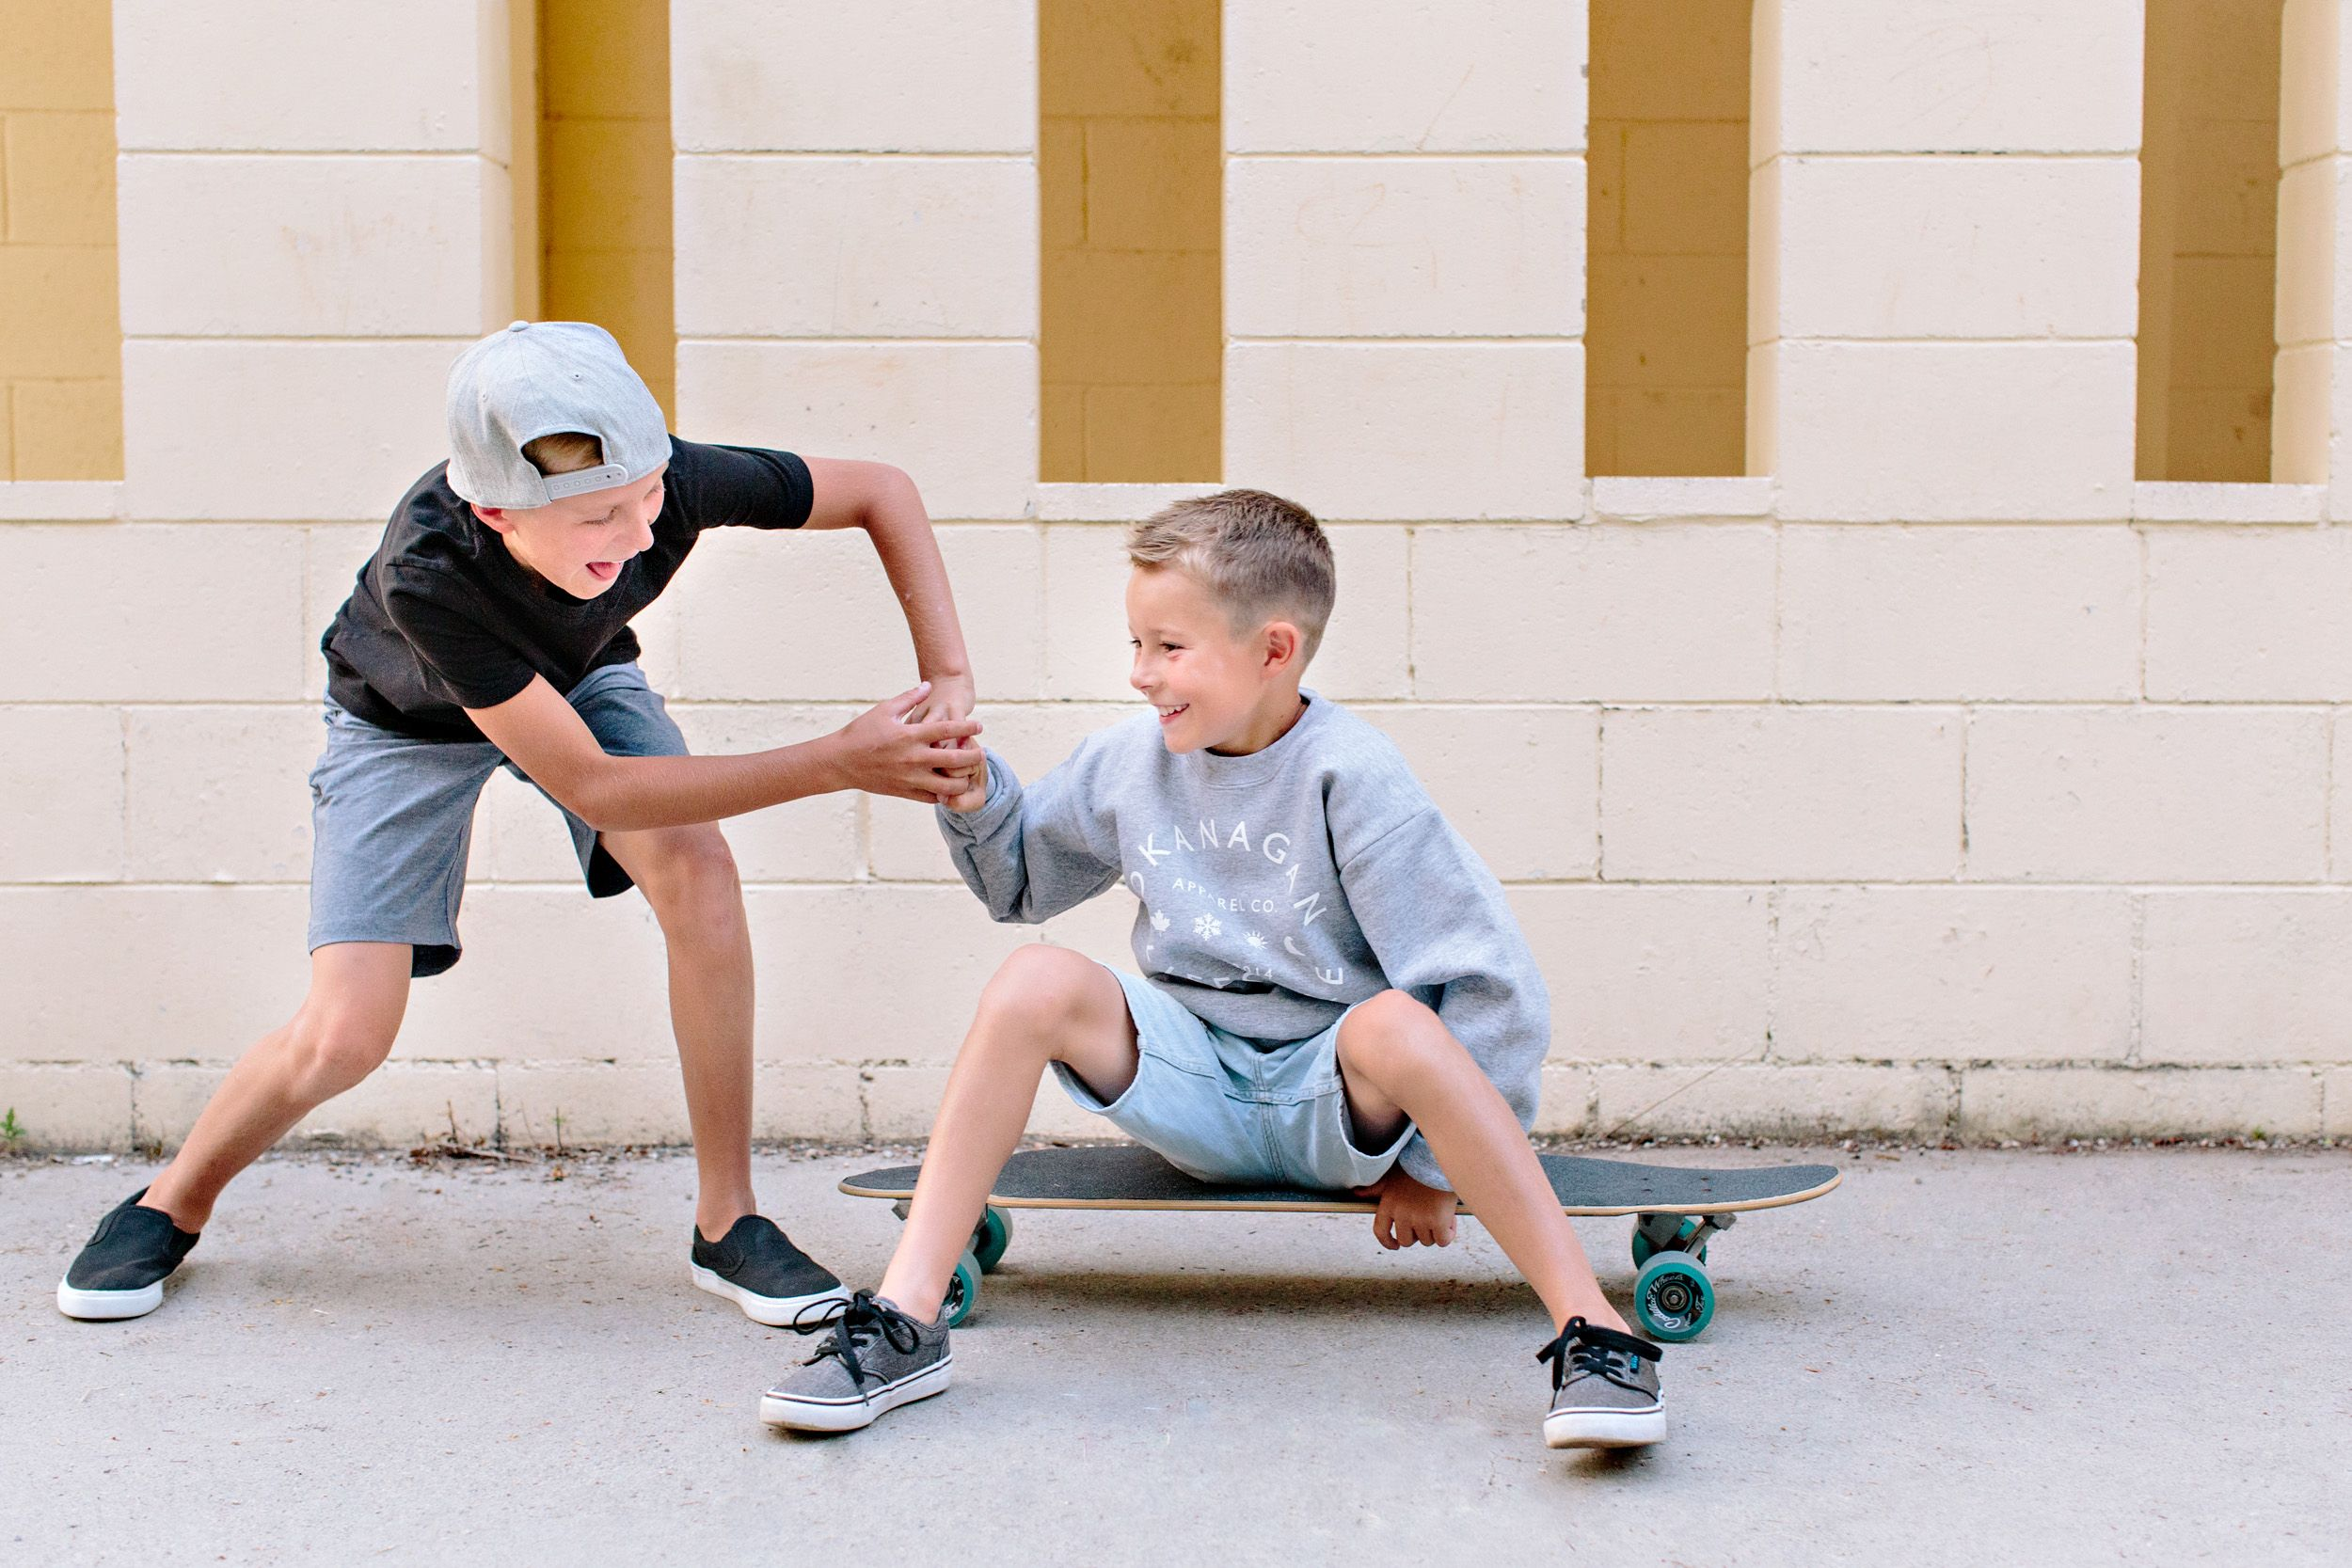 brothers playing around on skateboard